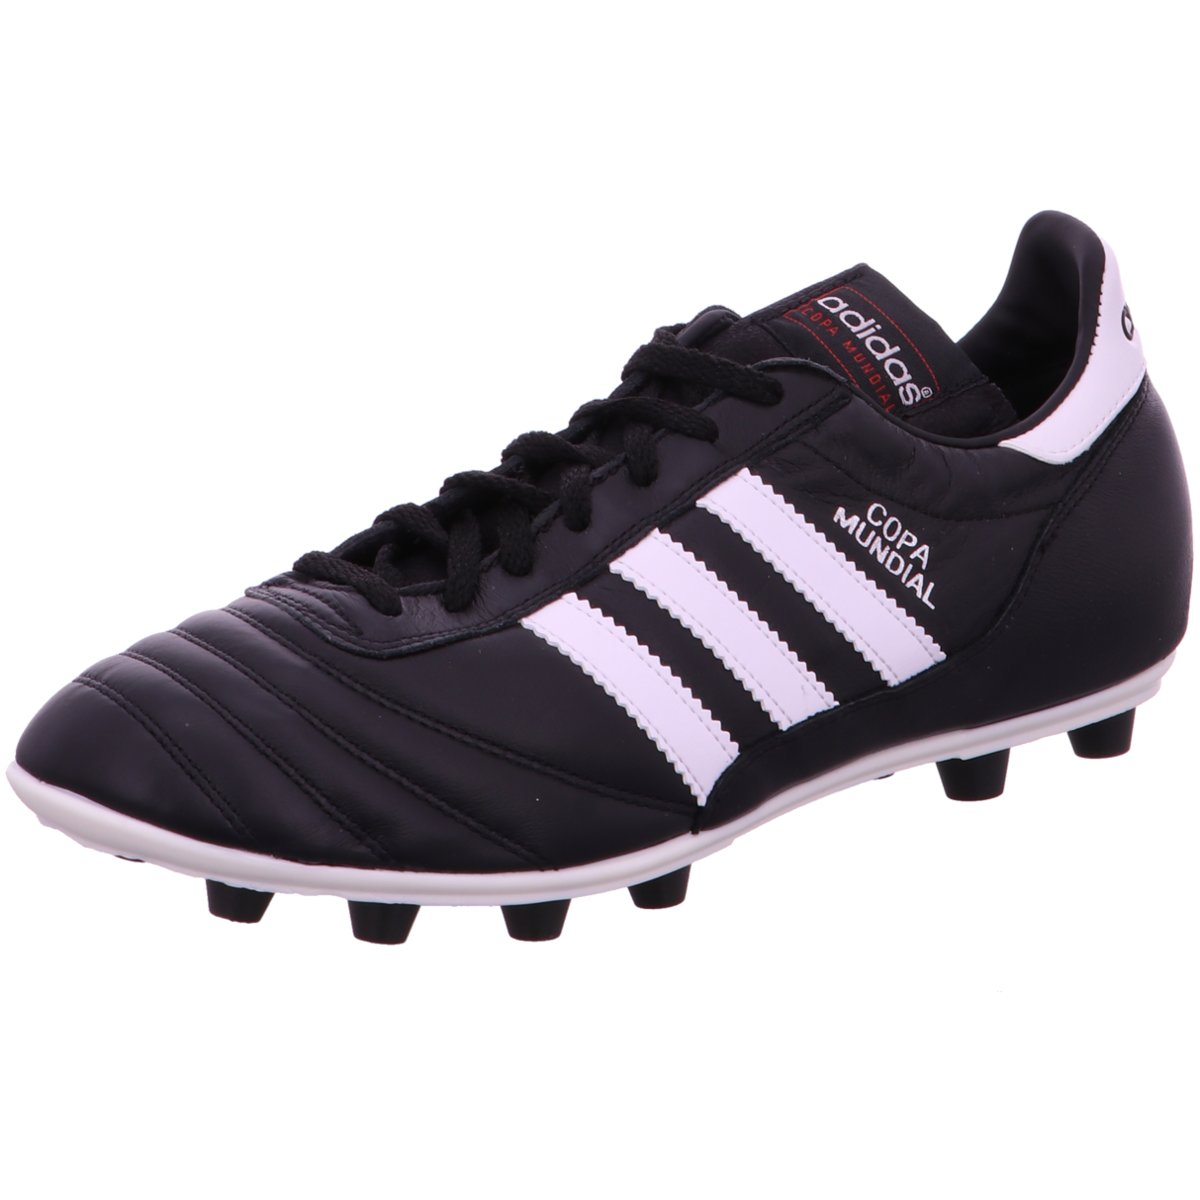 neu adidas herren sportschuhe copa mundial fu ballschuhe herren nocken ebay. Black Bedroom Furniture Sets. Home Design Ideas